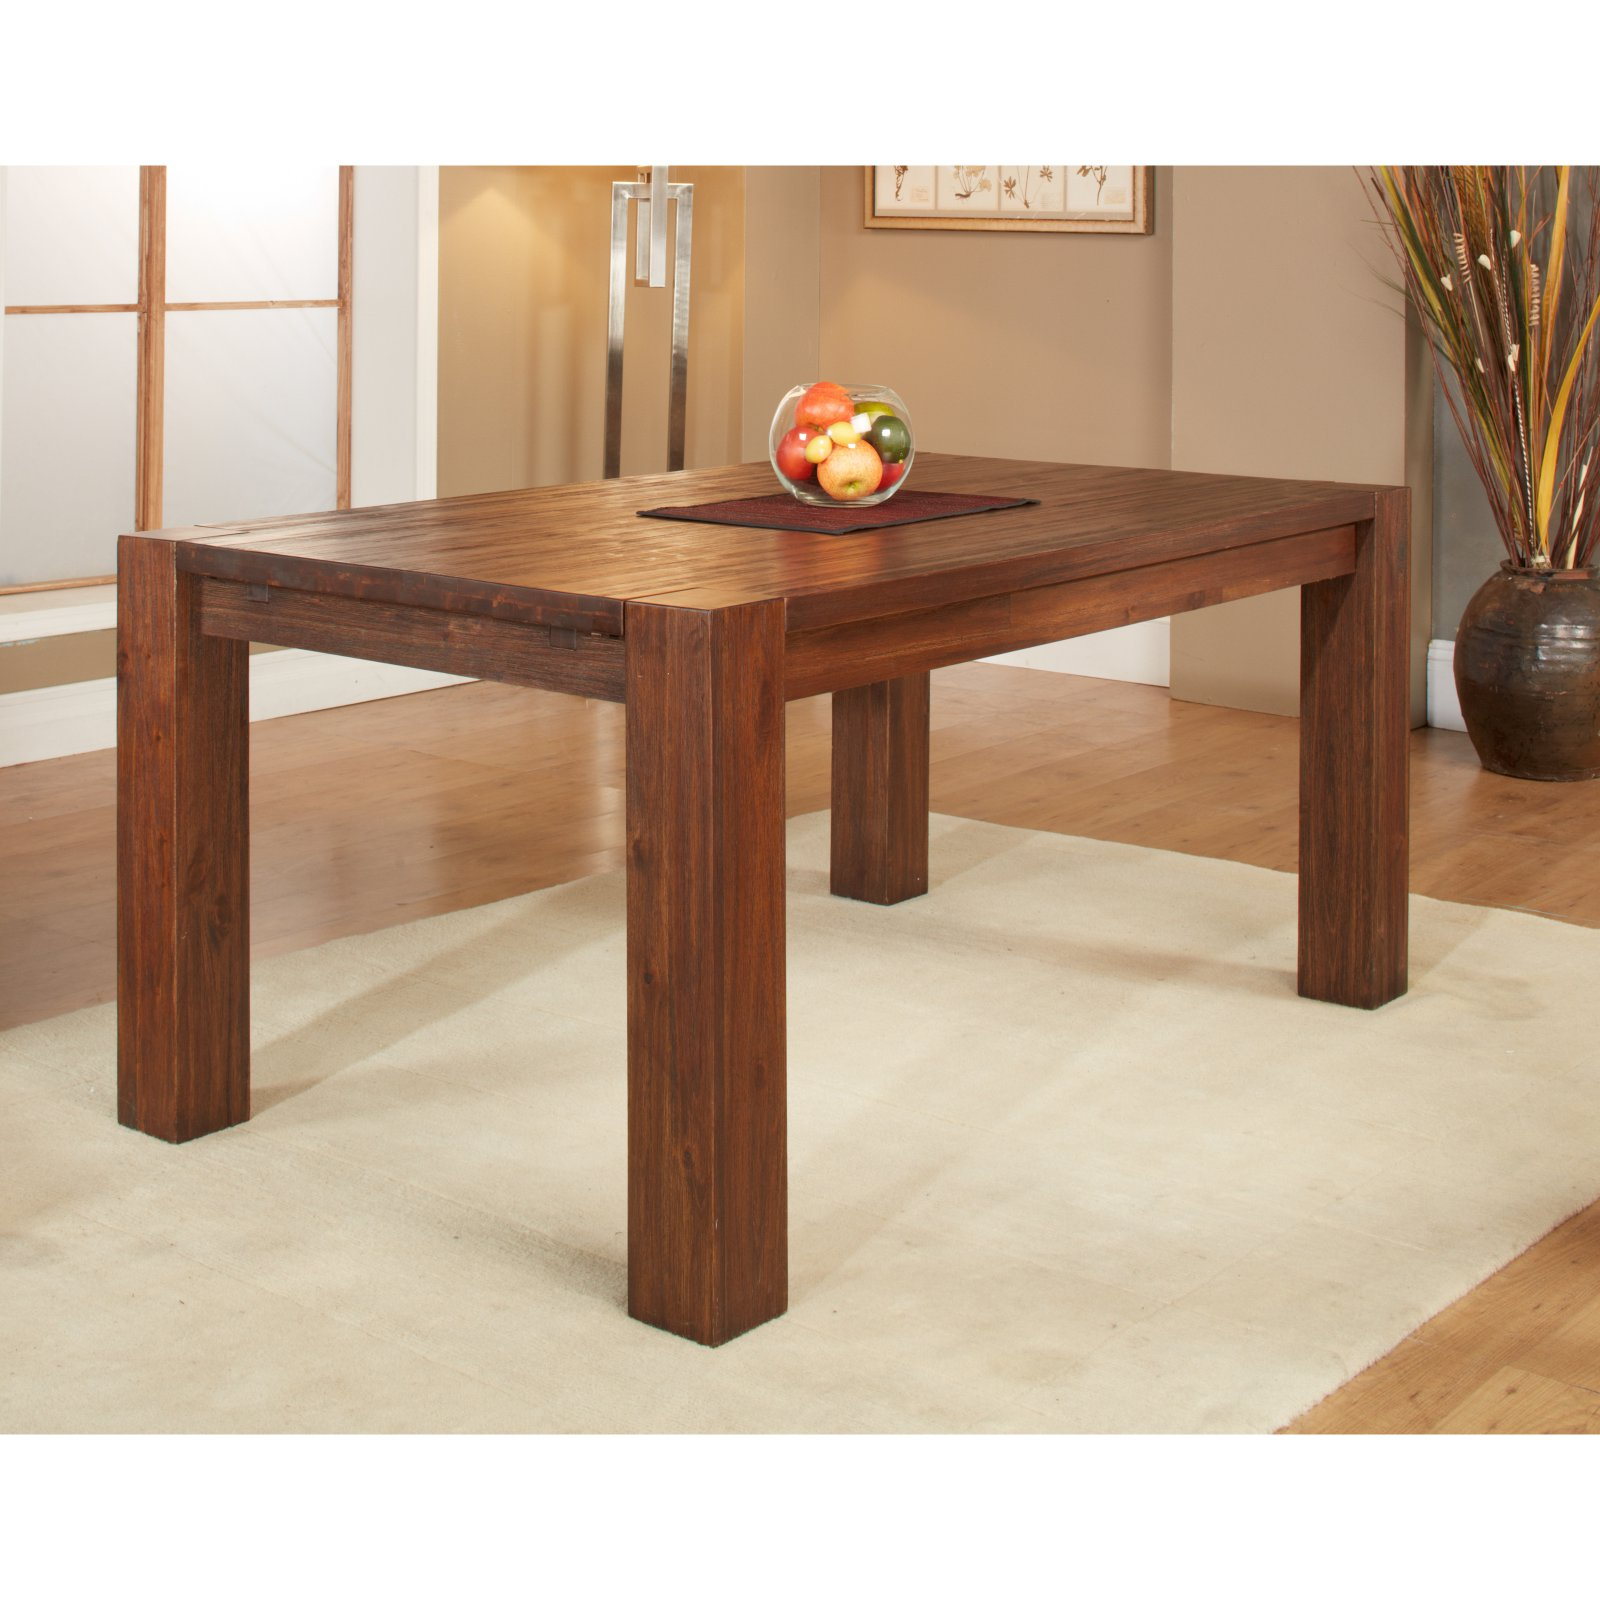 Modus Meadow Solid Wood Extending Dining Table Brick Brown by Modus Furniture International